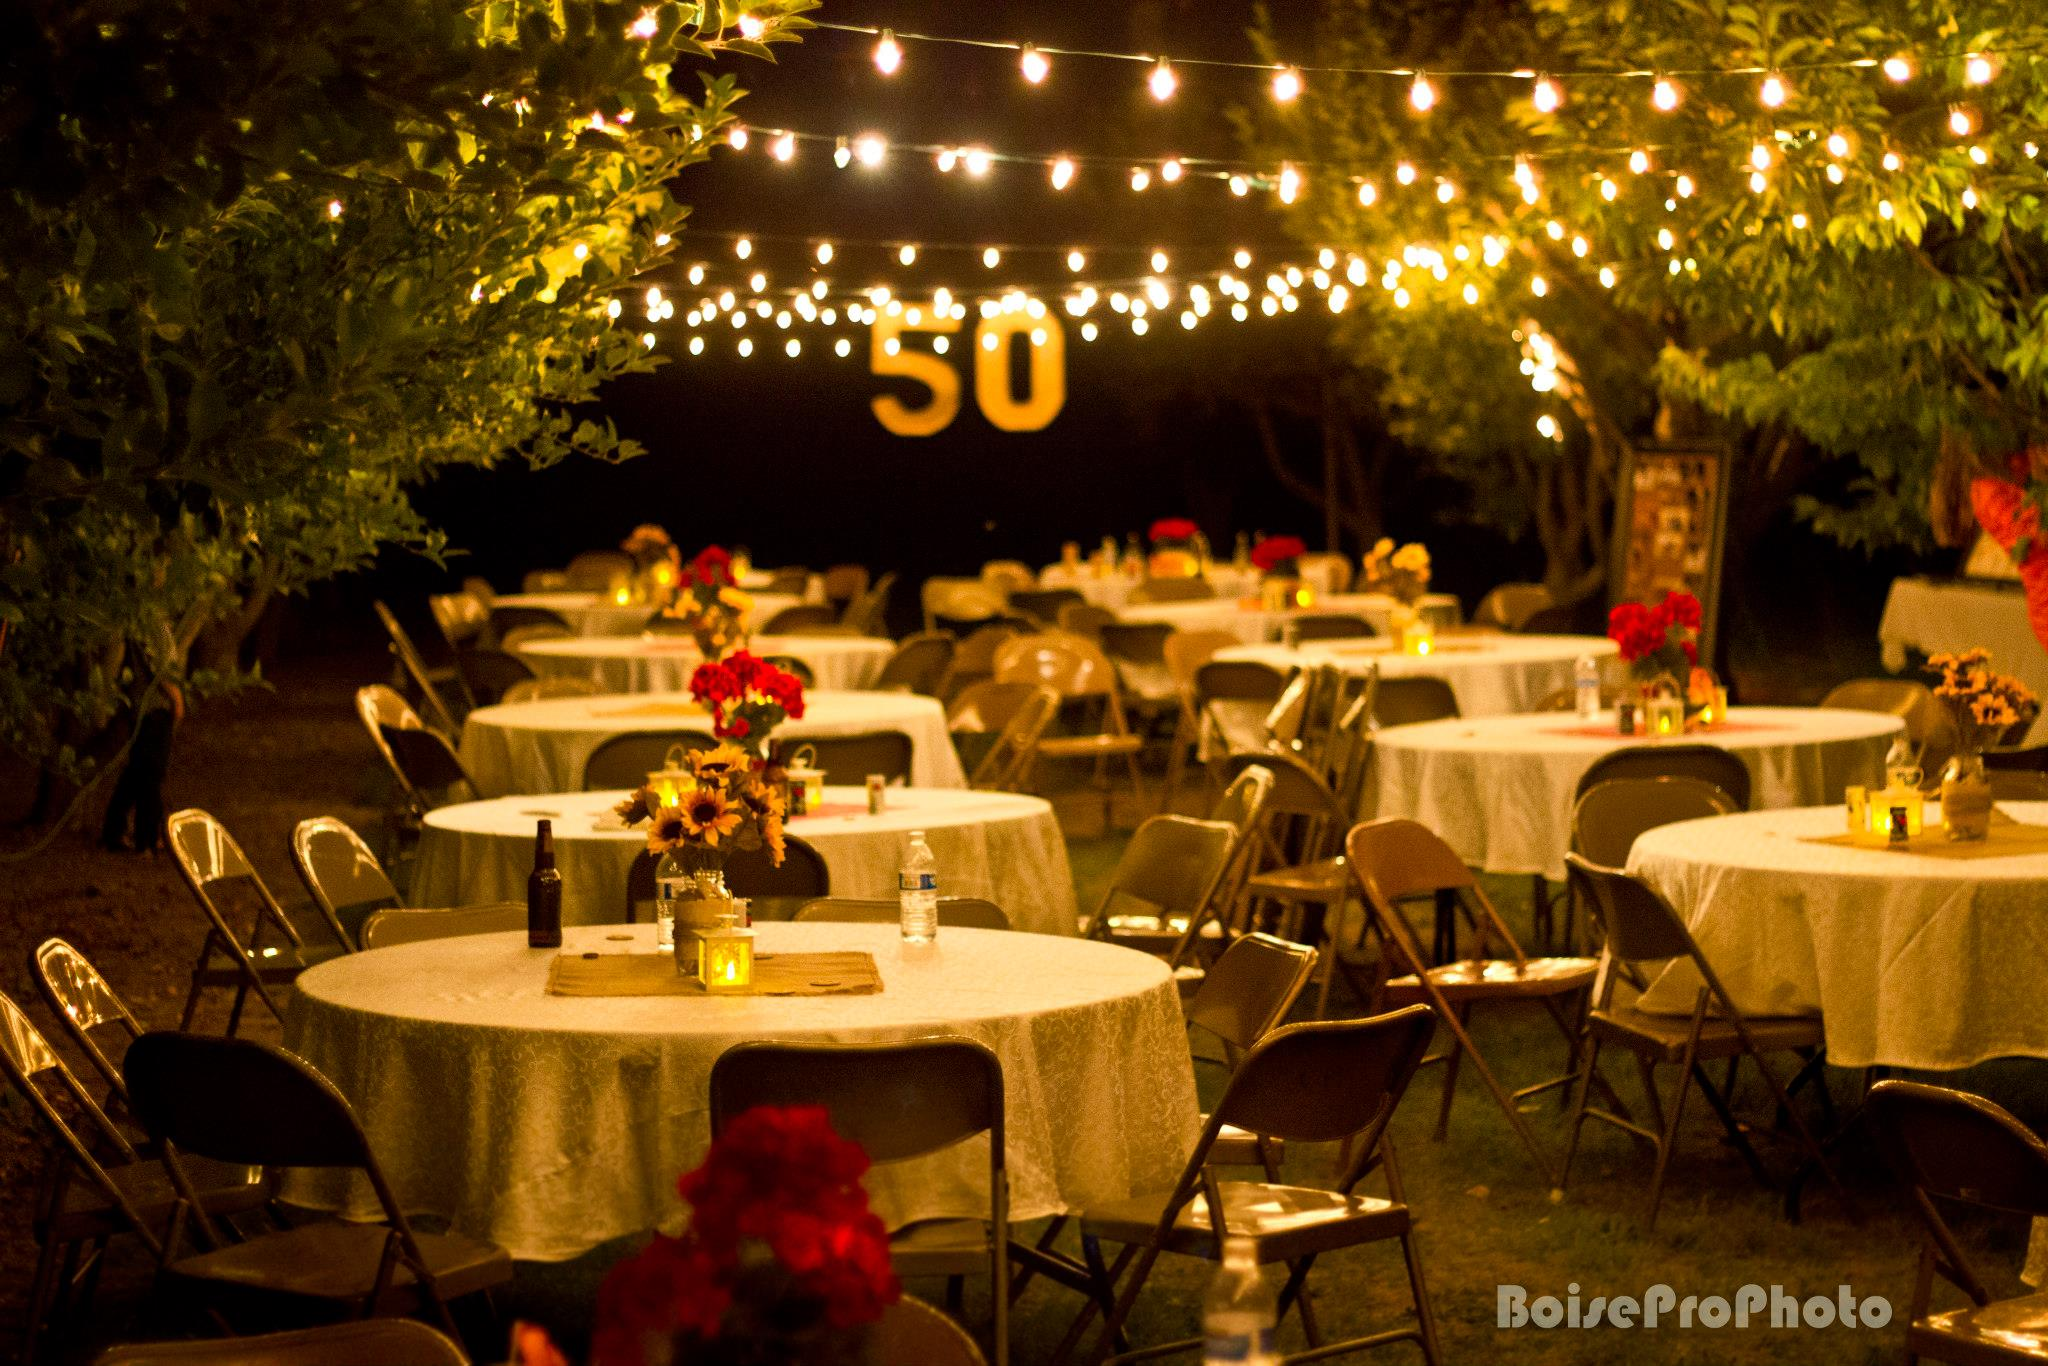 50th wedding anniversary decoration ideas romantic for 50th birthday party decoration ideas diy